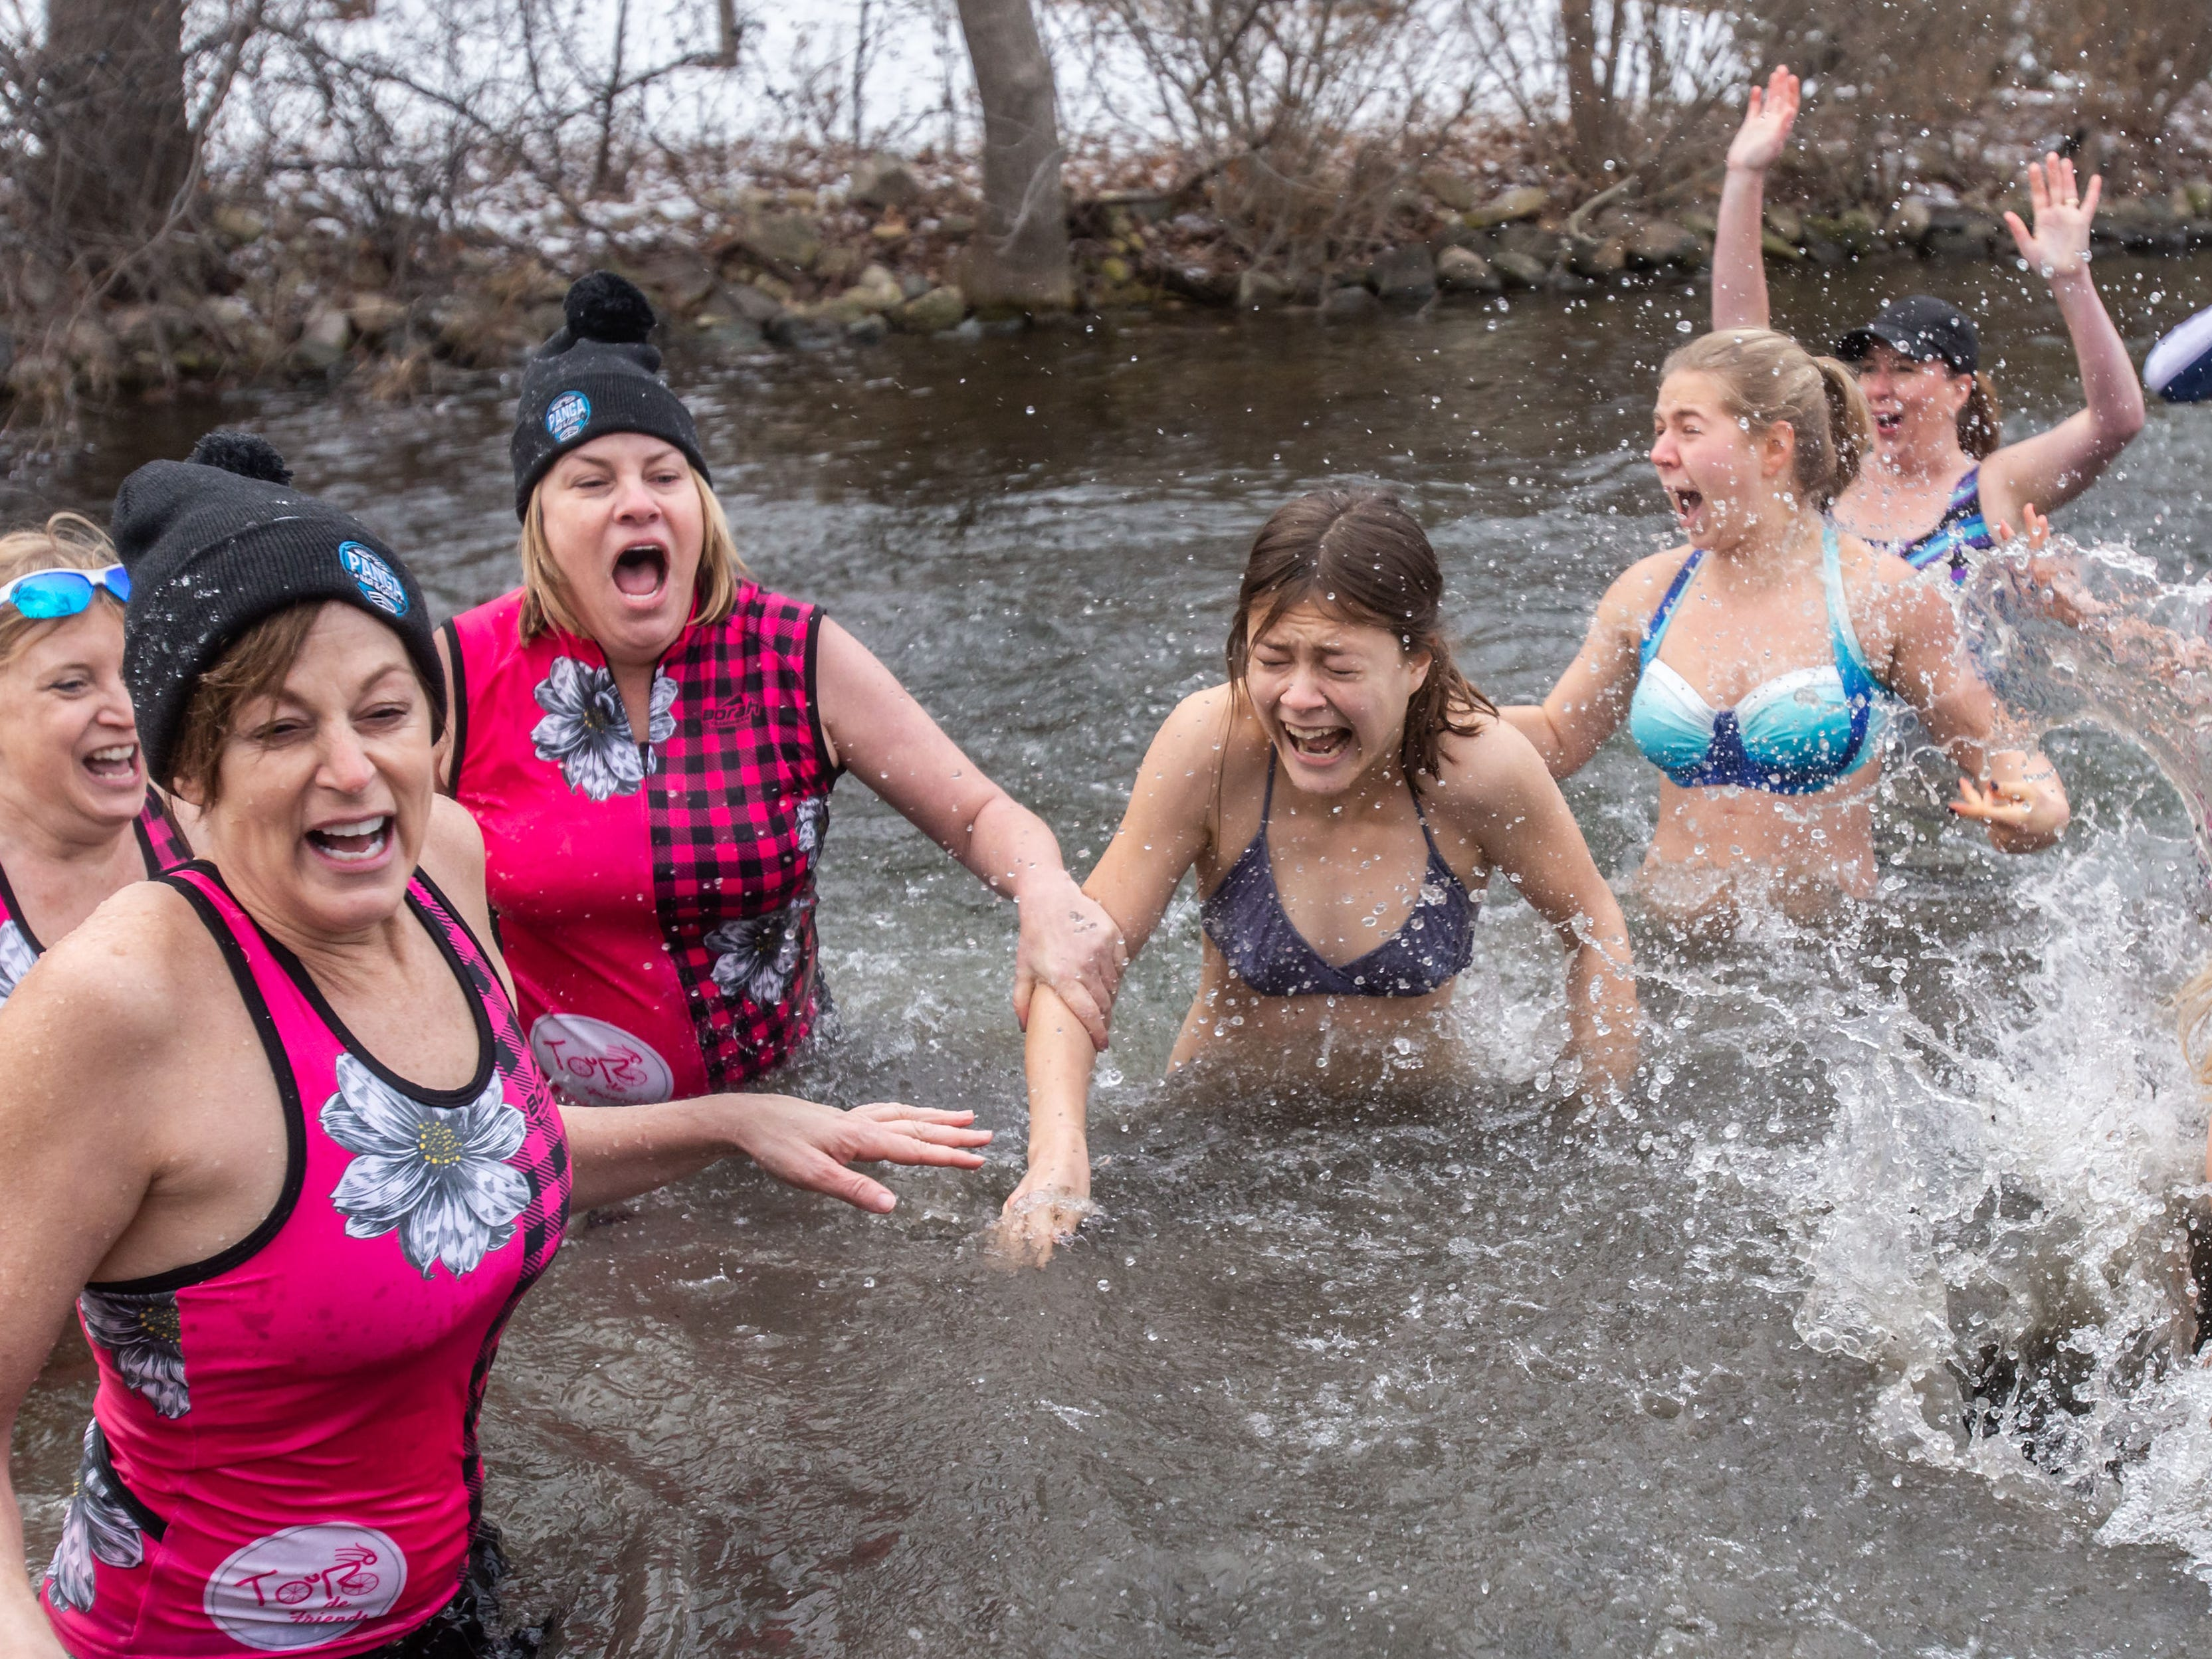 Jumpers react to the frigid water of Upper Nemahbin Lake during the annual Polar Plunge at Panga Bar & Grill in Oconomowoc on Tuesday, Jan. 1, 2019. Funds raised from this year's plunge will benefit research efforts of the Alzheimer's Association.